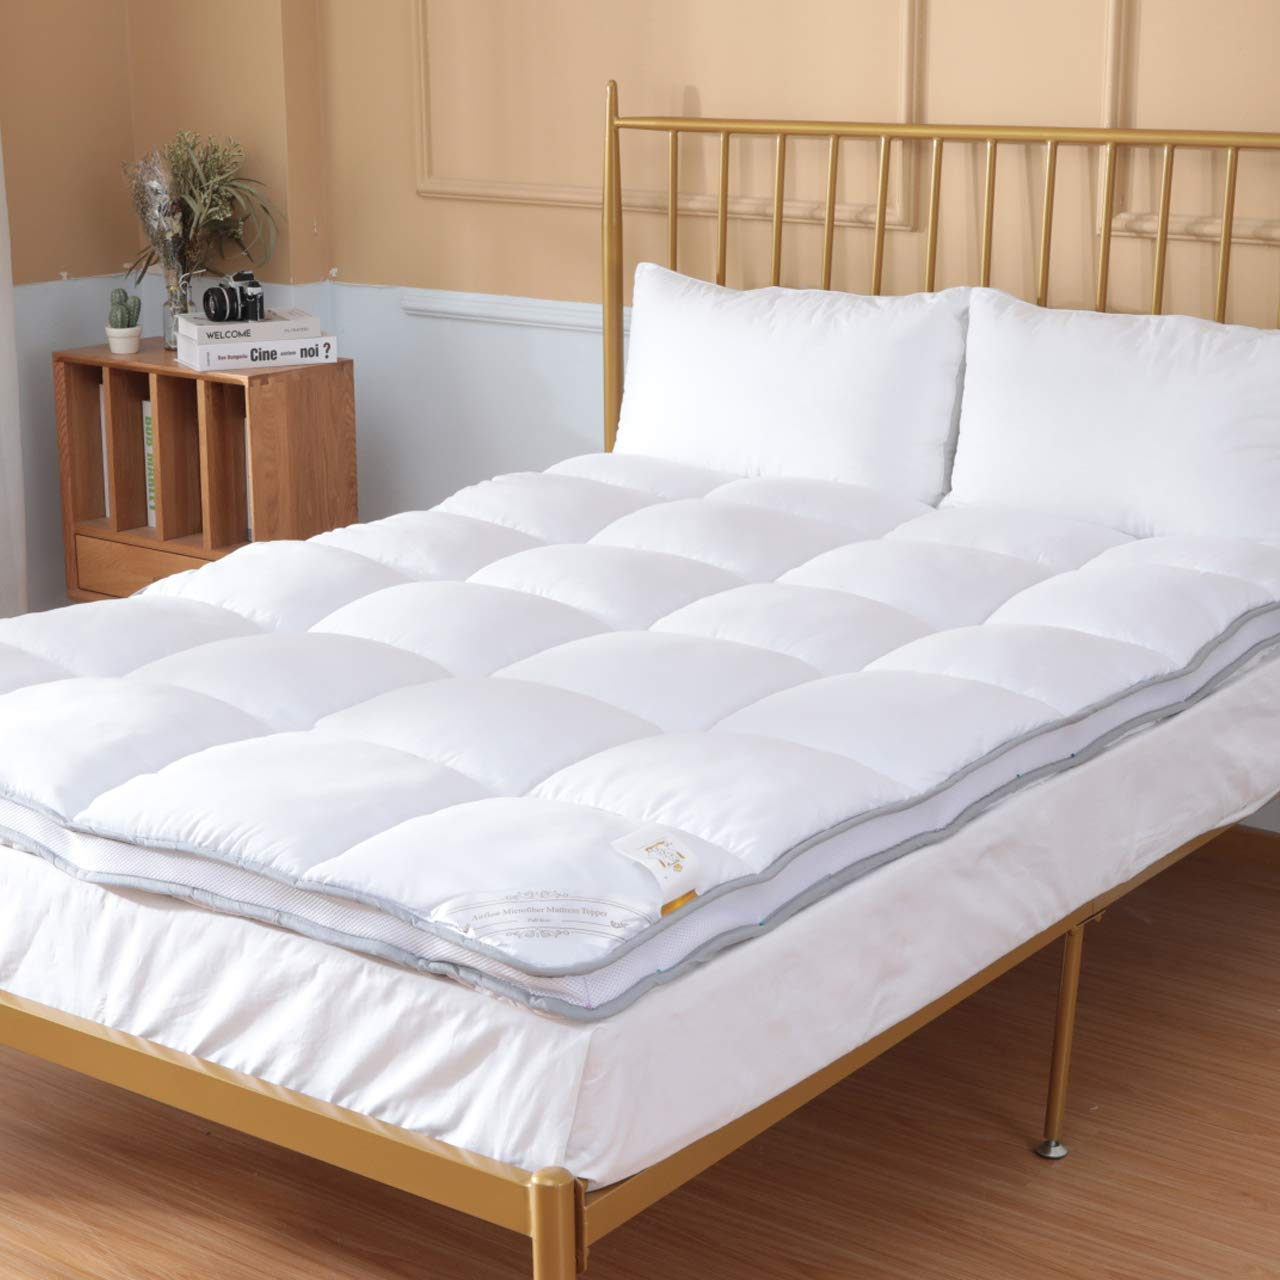 Duck & Goose Co Air-Flow Luxury Hotel Quality Mattress Topper, Ultra Plush Down Alternative Pillow Top Hypoallergenic Bed Topper 2'' H, Twin Size